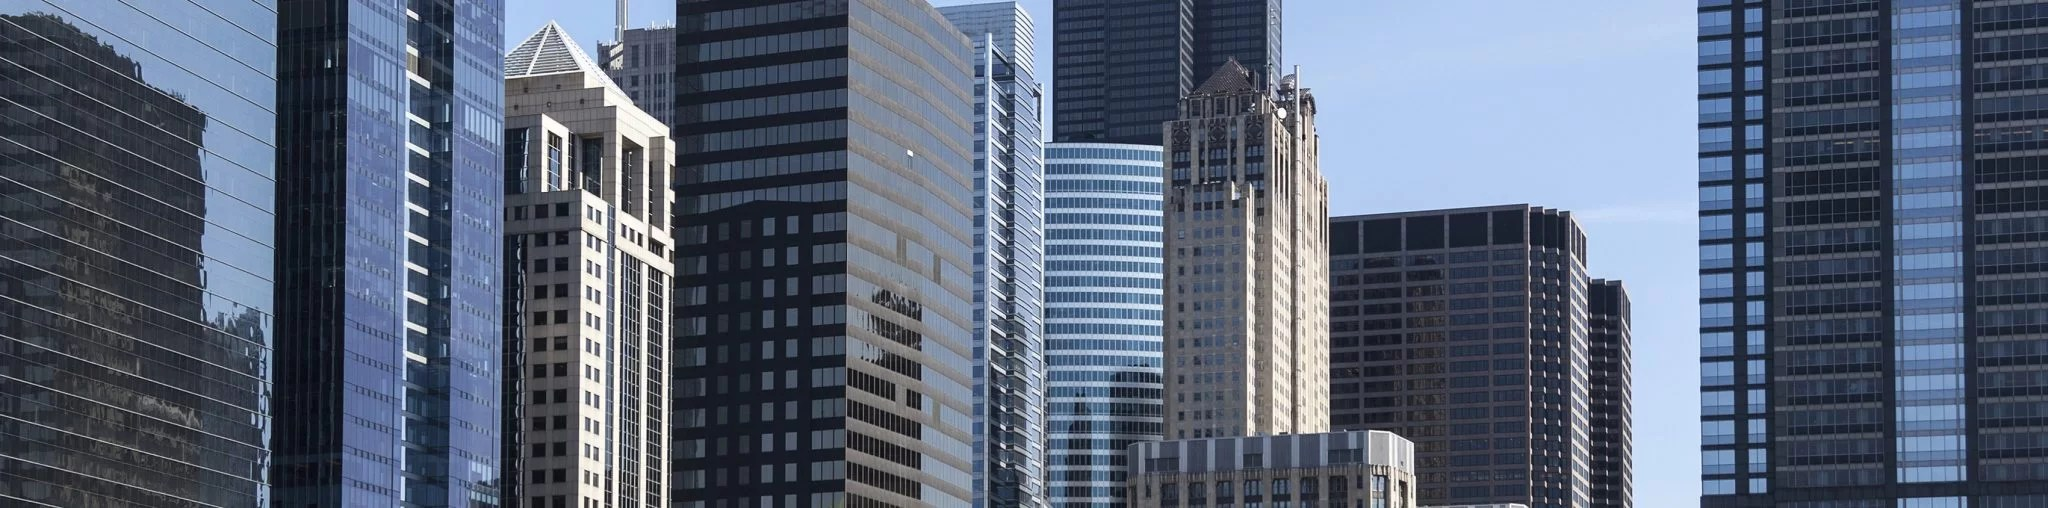 Chicago_Skyline_crop2